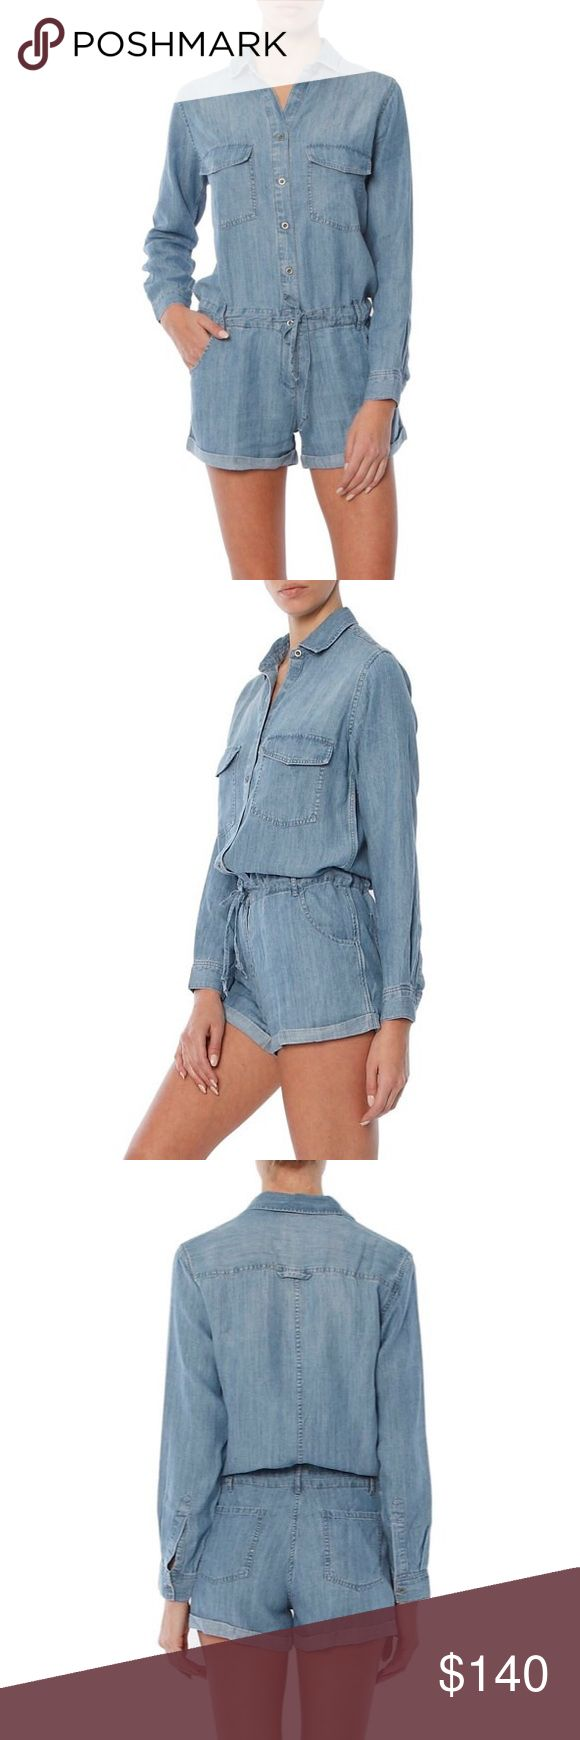 RAILS Johnny Utility Romper Styled for work but meant for play, this ultrasoft and breezy romper is laid-back, slouchy and ready for warm weather thanks to casually cuffed shorts. -Front button closure; ties at waist -Spread collar -Long sleeves with single-button cuffs -Front slant pockets; back patch pockets -Belt loops -70% Tencel® lyocell, 30% linen -Machine wash, tumble dry Rails Pants Jumpsuits & Rompers